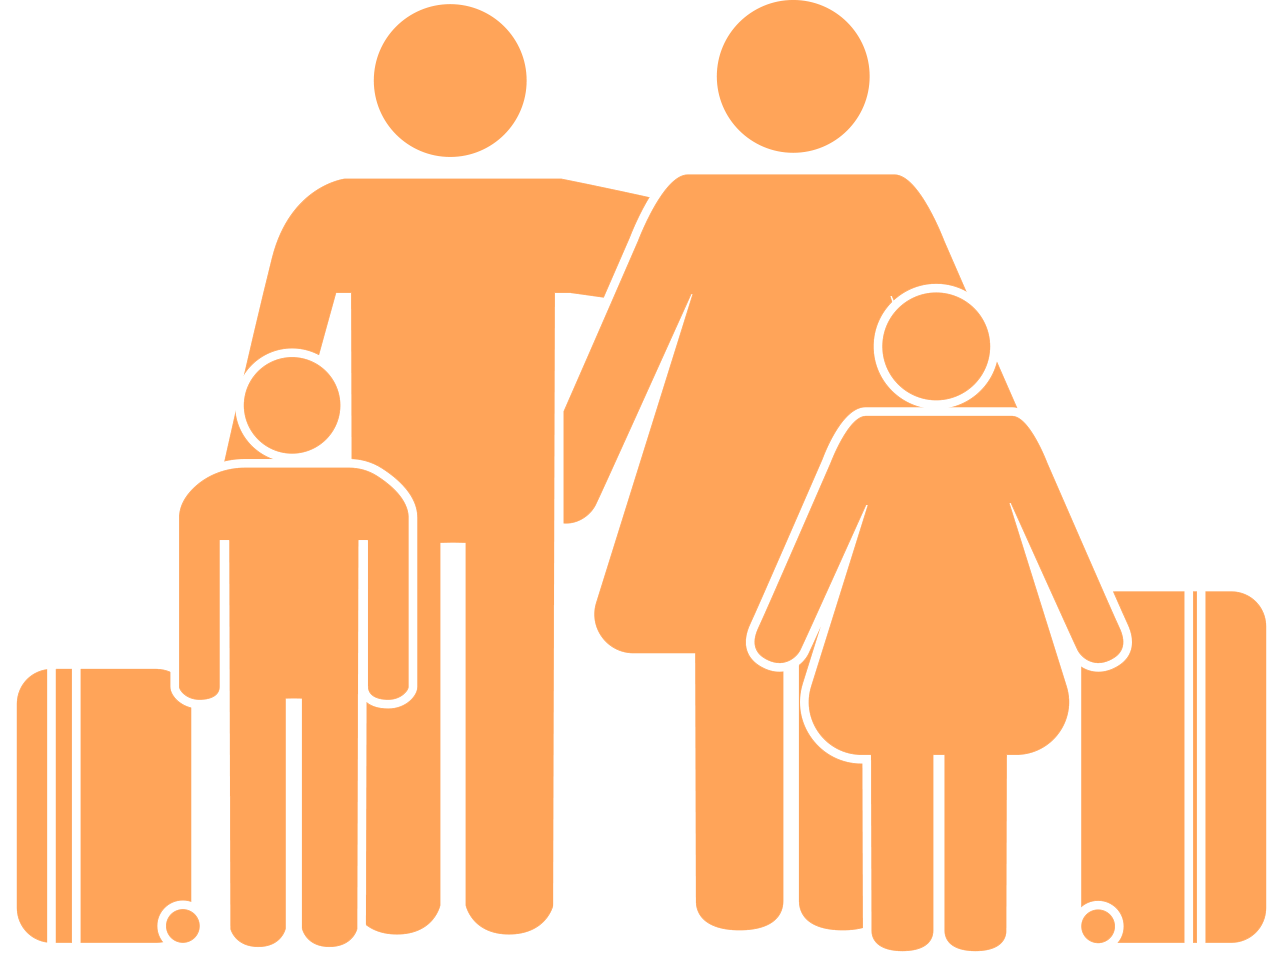 Government giving money to illegals clipart jpg download 2016 Census Results Highlight Canada's Increasing Diversity ... jpg download